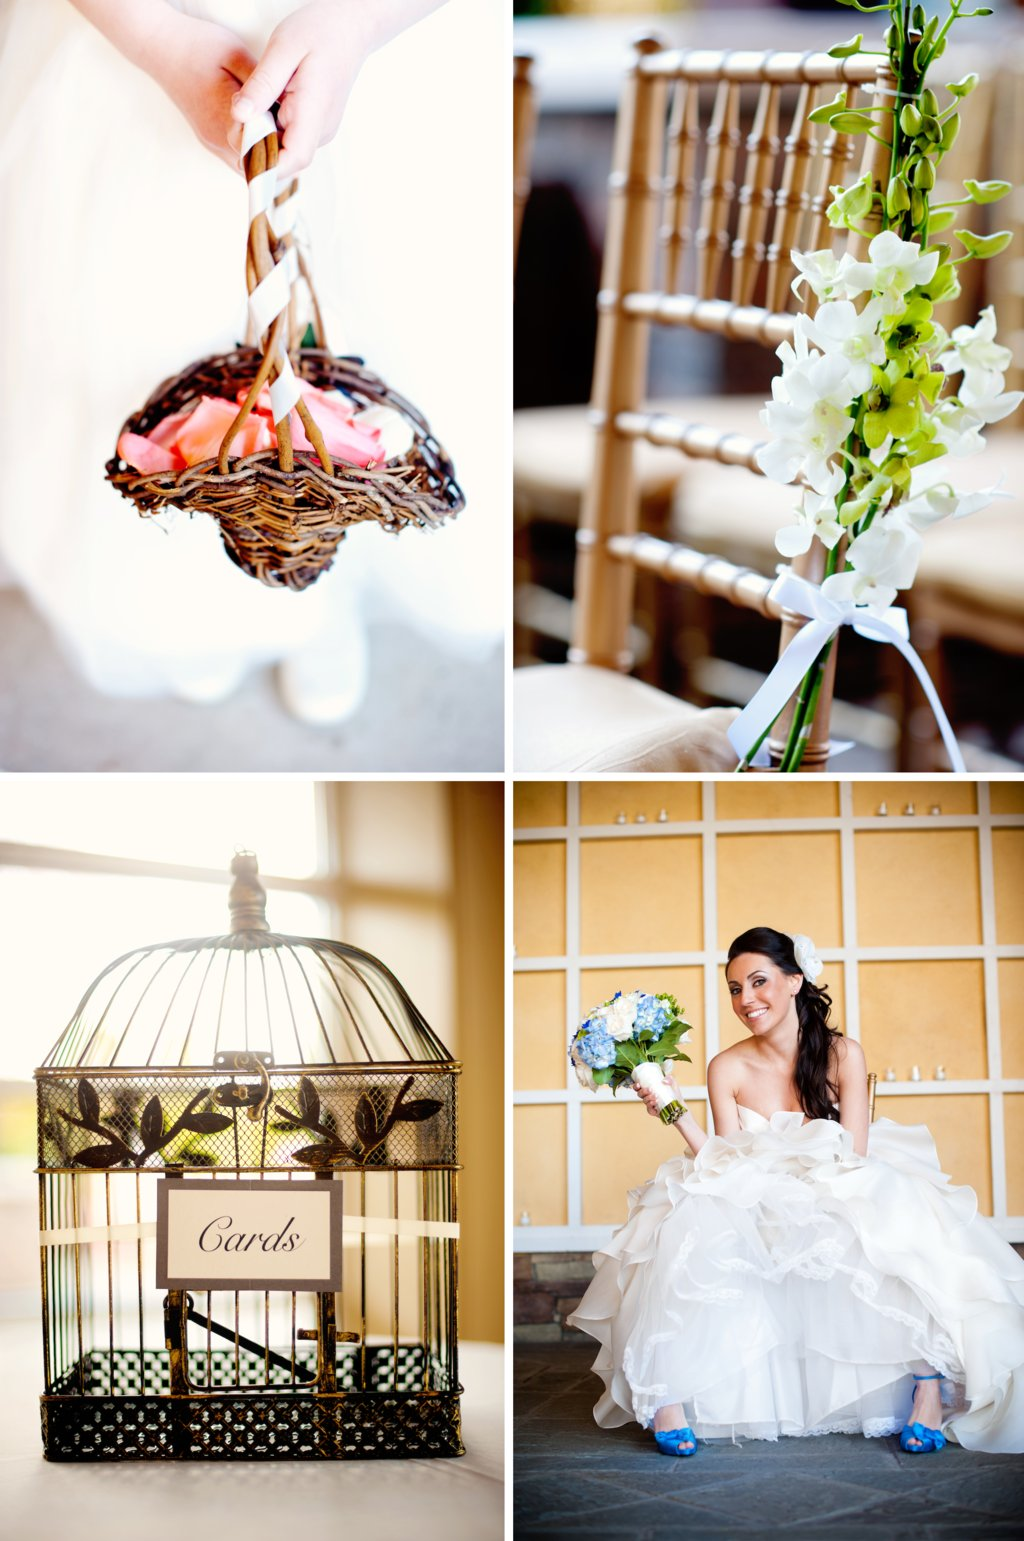 Elegant-real-wedding-with-simple-details.full